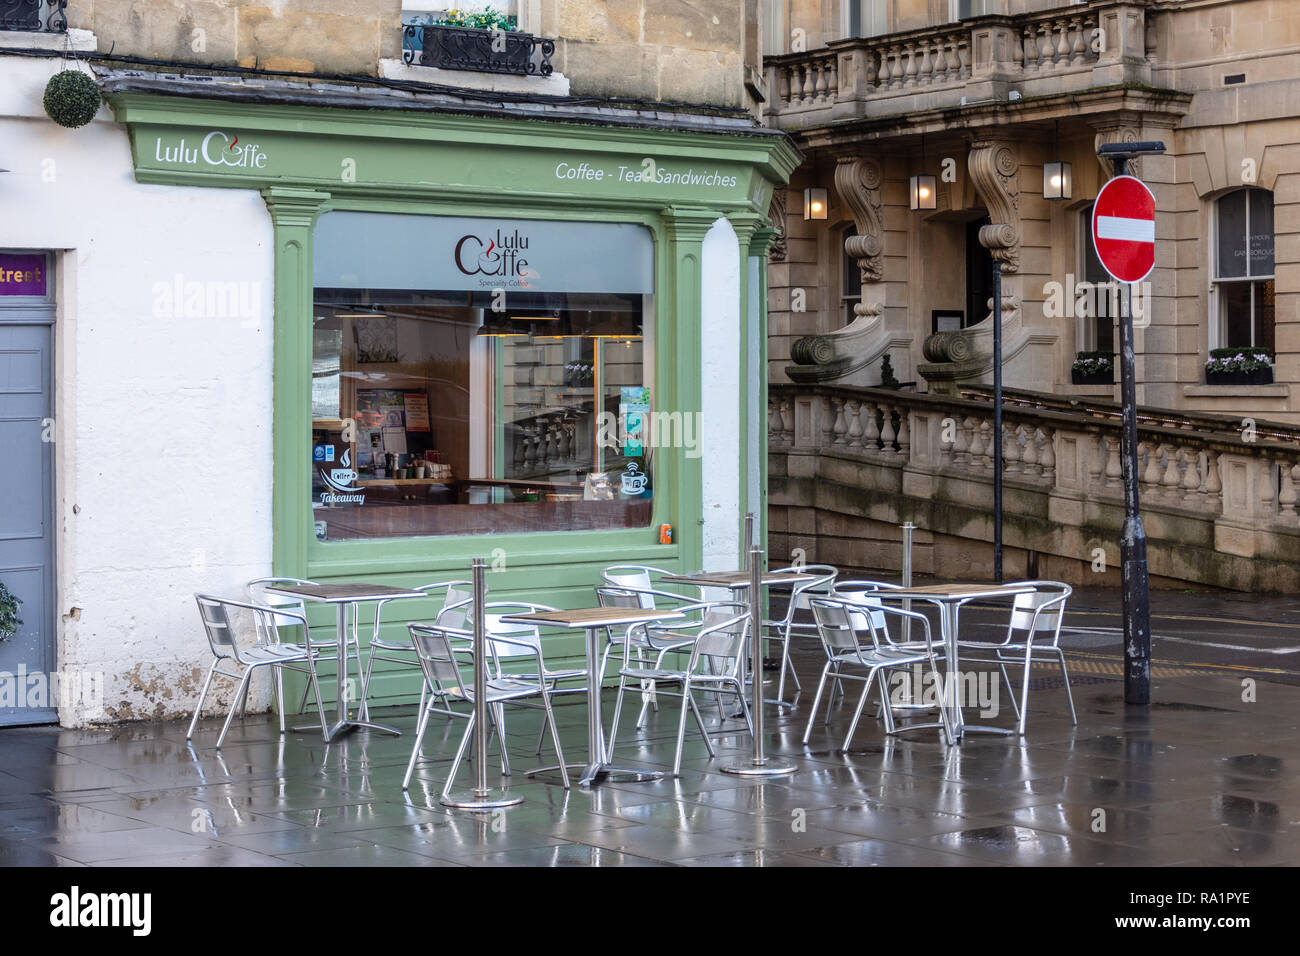 Lulu Caffe speciality coffee shop with chairs and tables outside  on Hot Bath Street in the city of Bath on a wet winter morning - Stock Image